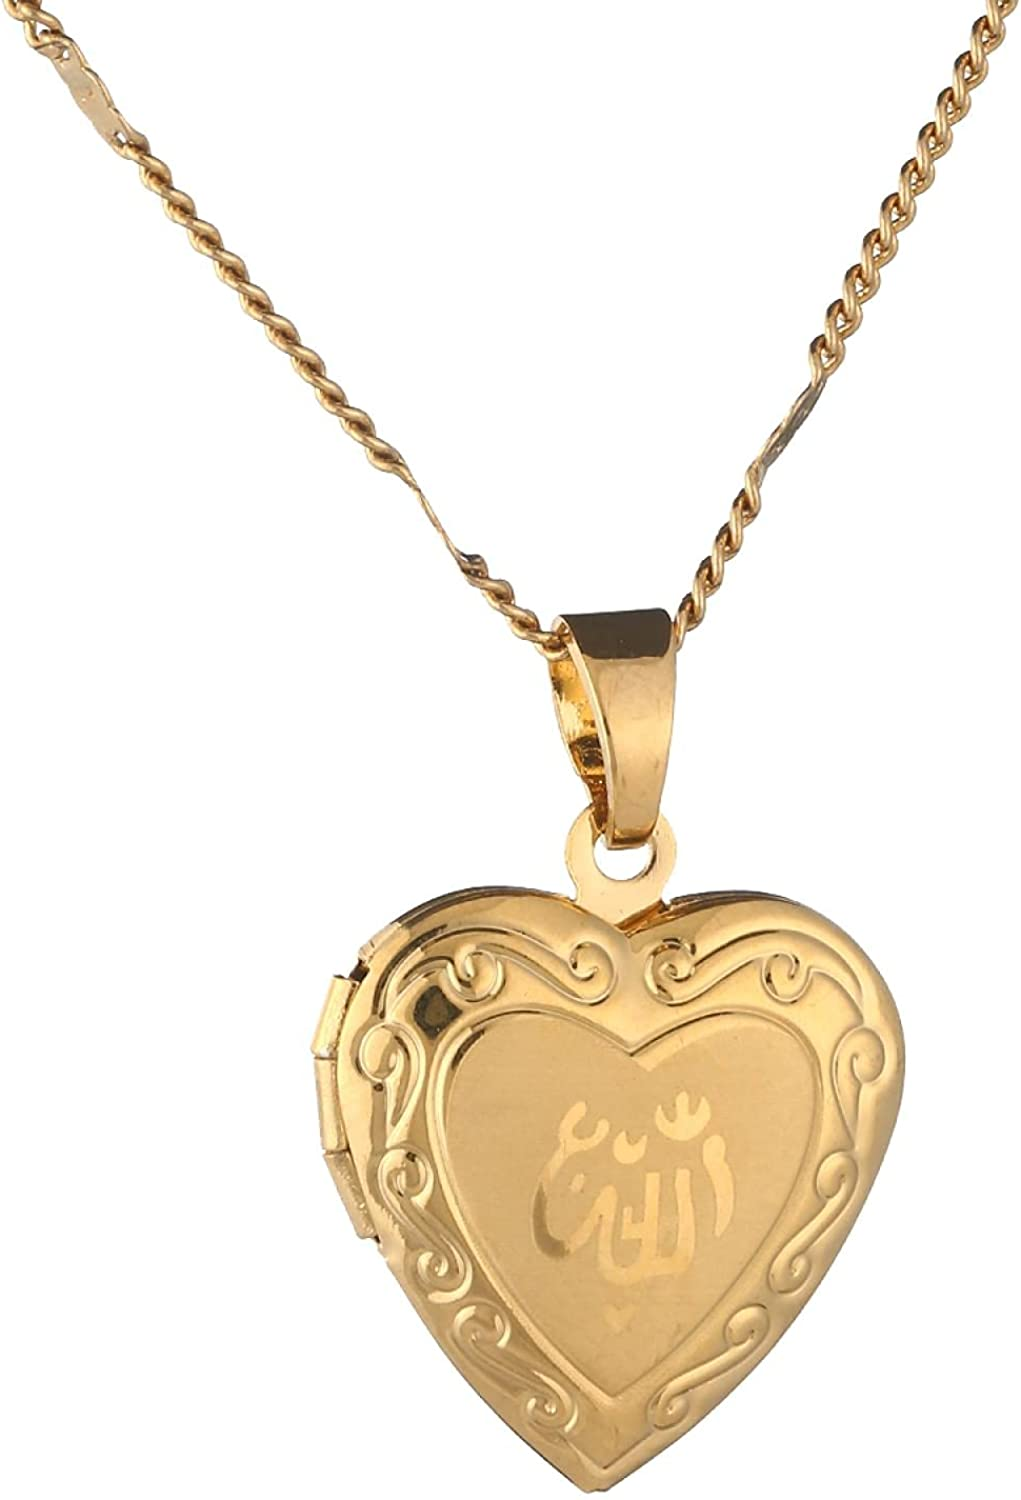 Naswi Heart Locket Pendant Purchase Necklace Jewelry Rom Gold Women High order Color